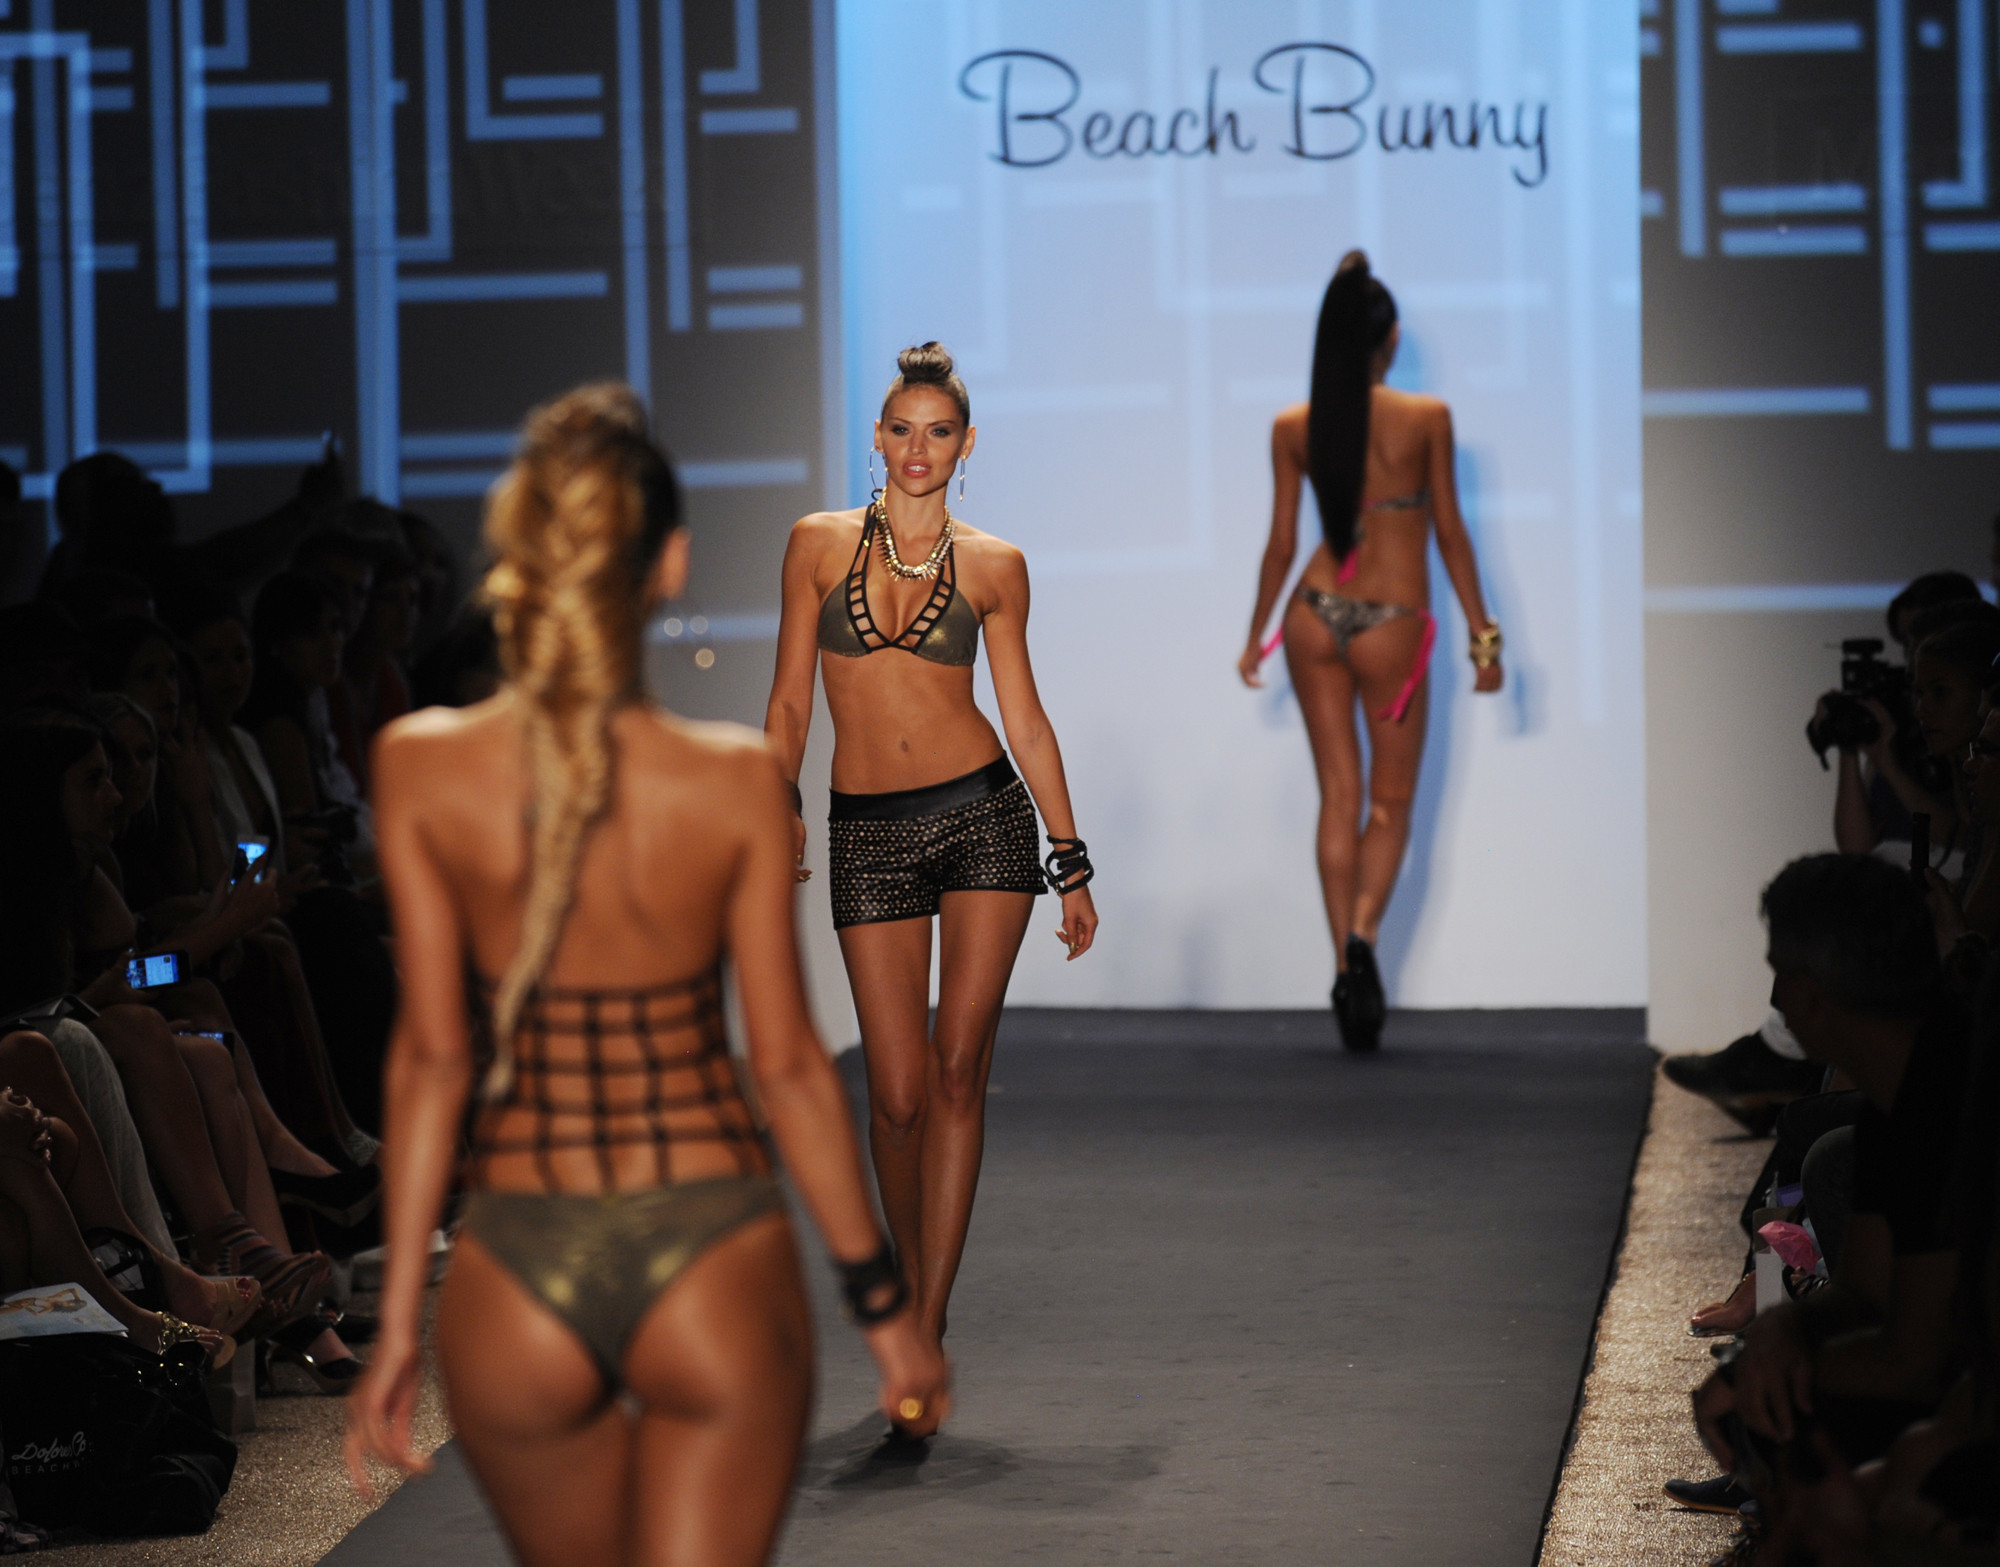 A look back at Miami Swim Week 2013 - Beach Bunny